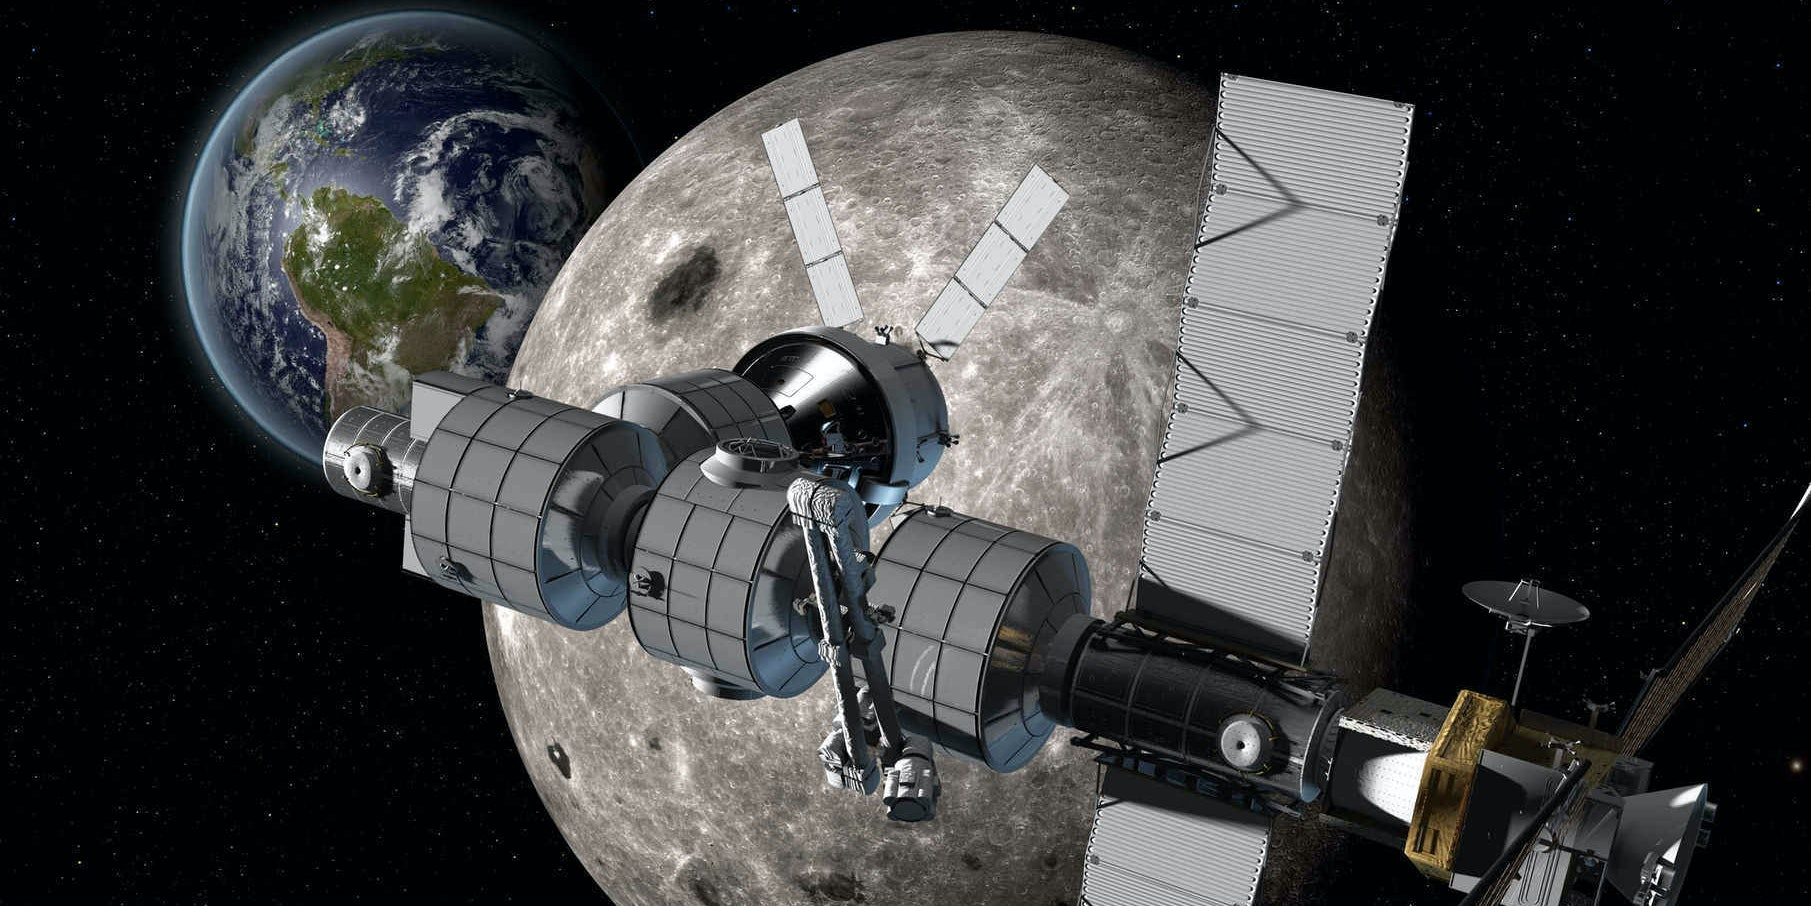 Artist's rendering of Boeing's proposed crewed lunar station.